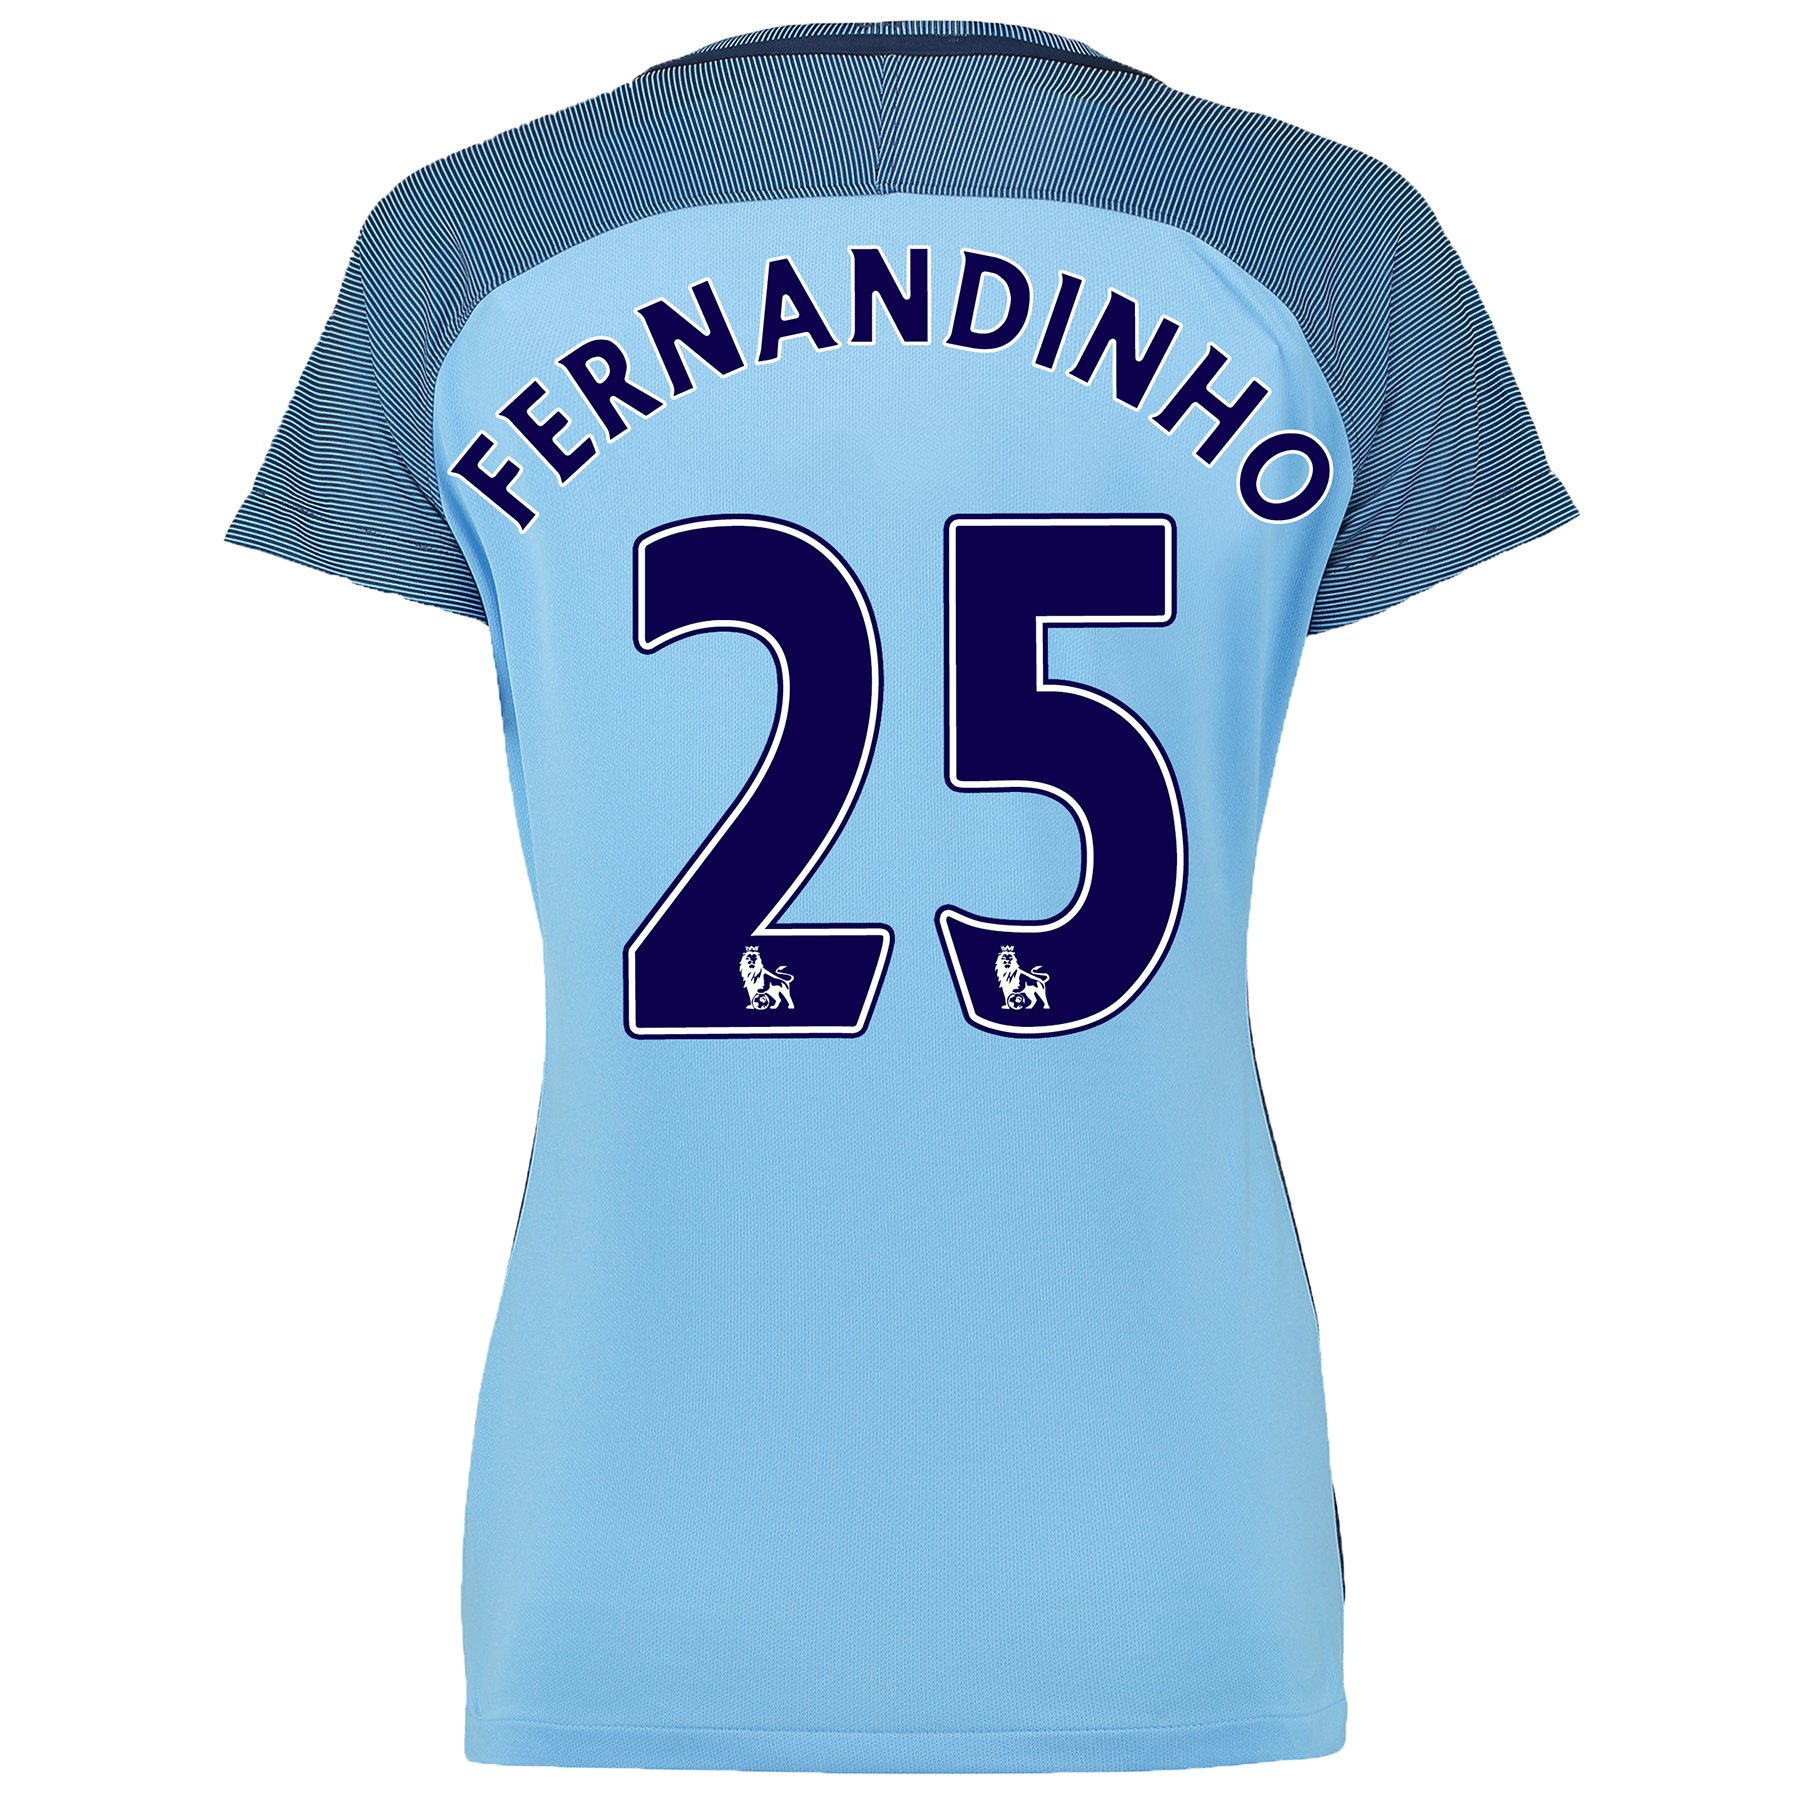 Manchester City Home Shirt 2016-17 - Womens with Fernandinho 25 printi